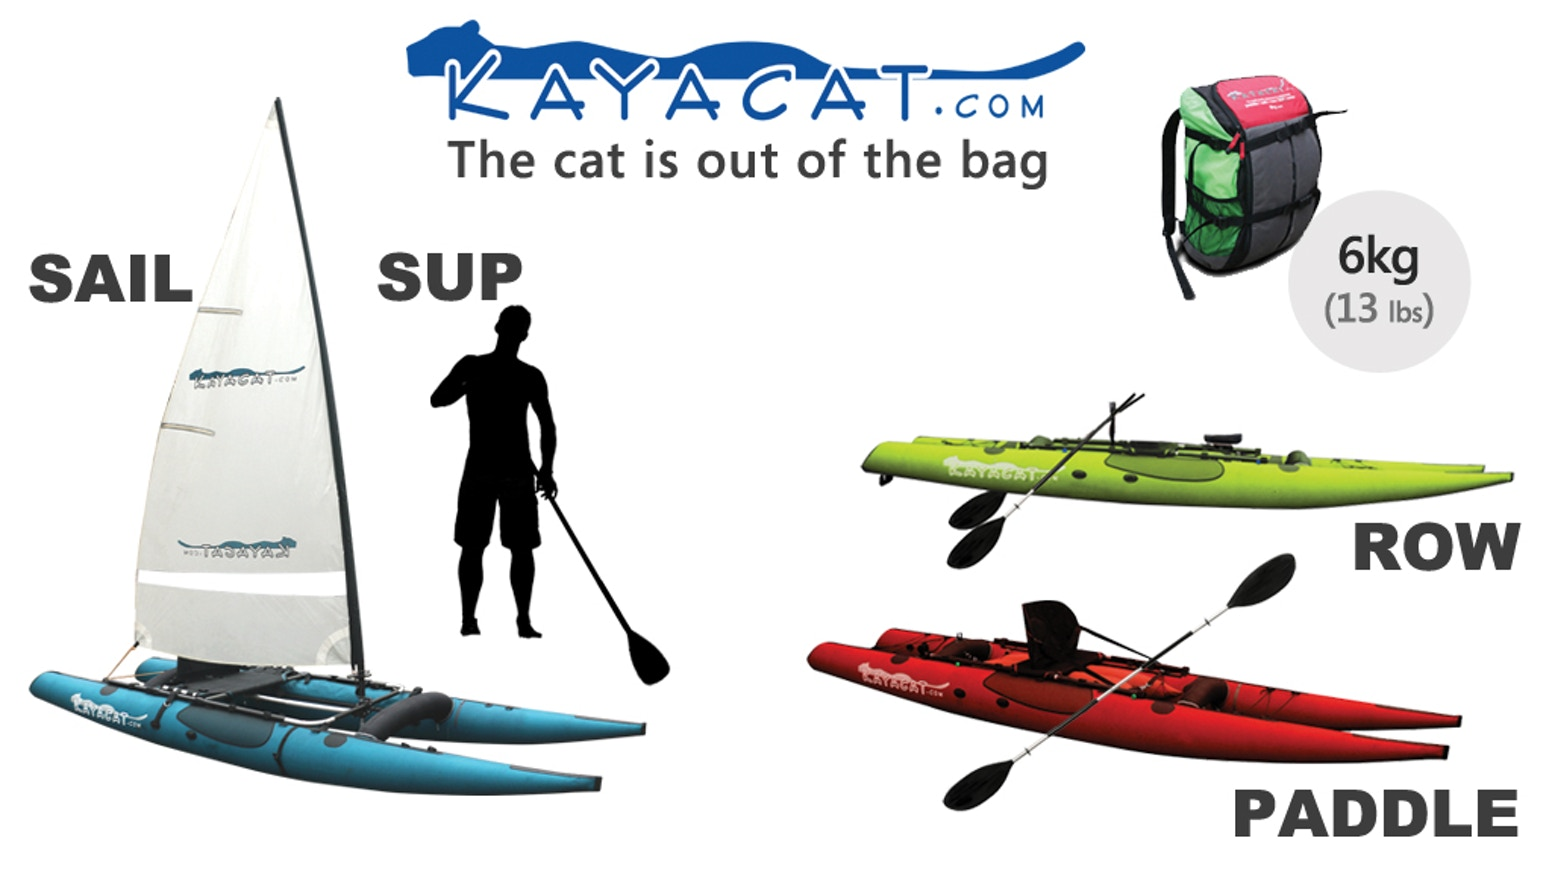 Kayak / Sail / SUP / Row / Motor. Kayacat, The Lightest, Most Versatile, Multi-Mode, Compact Personal Watercraft in the World!